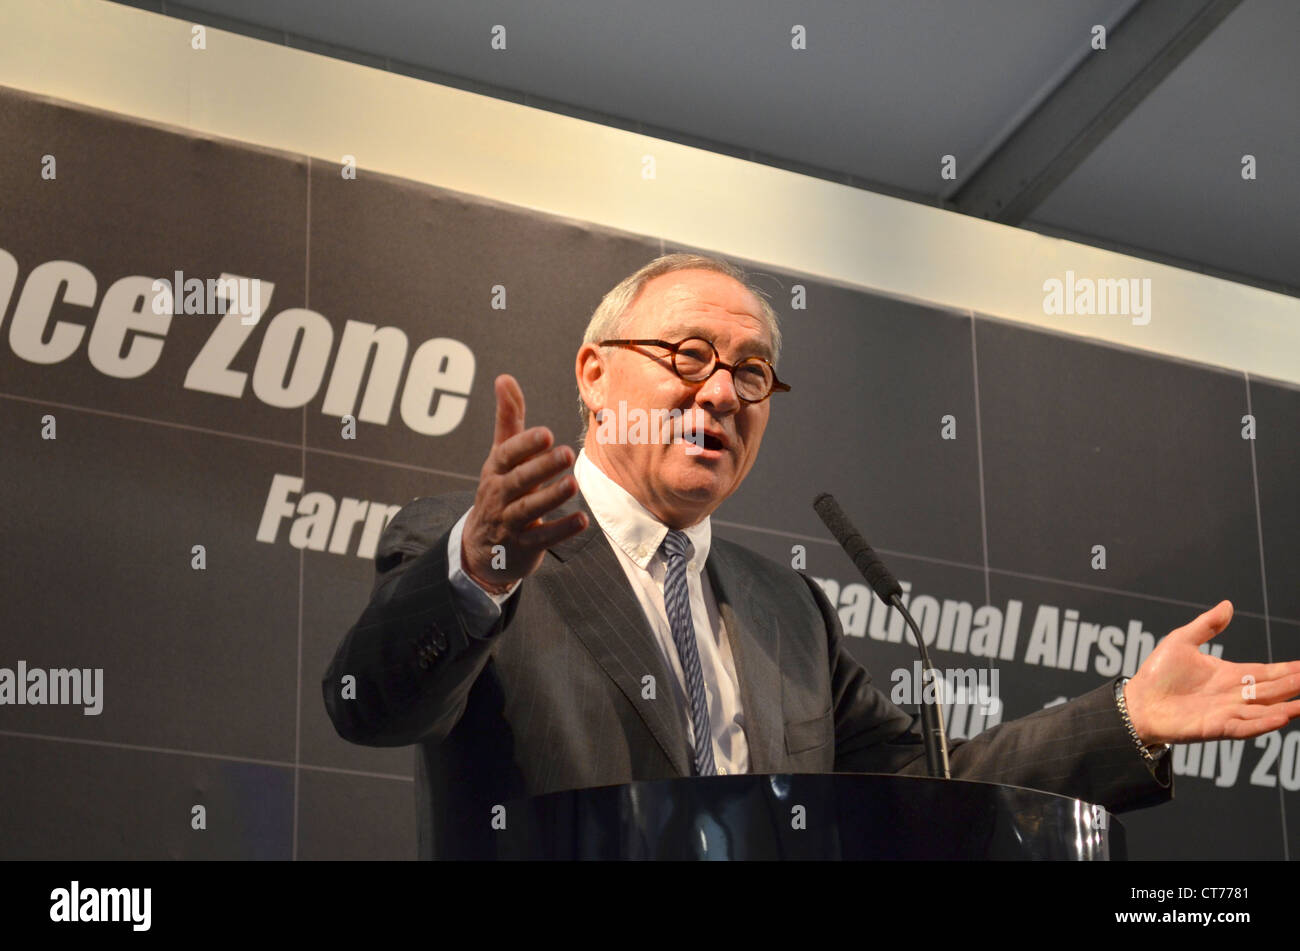 Jean Jacques Dordain, Director General ESA, speaking at the Farnborough Air Show - Stock Image